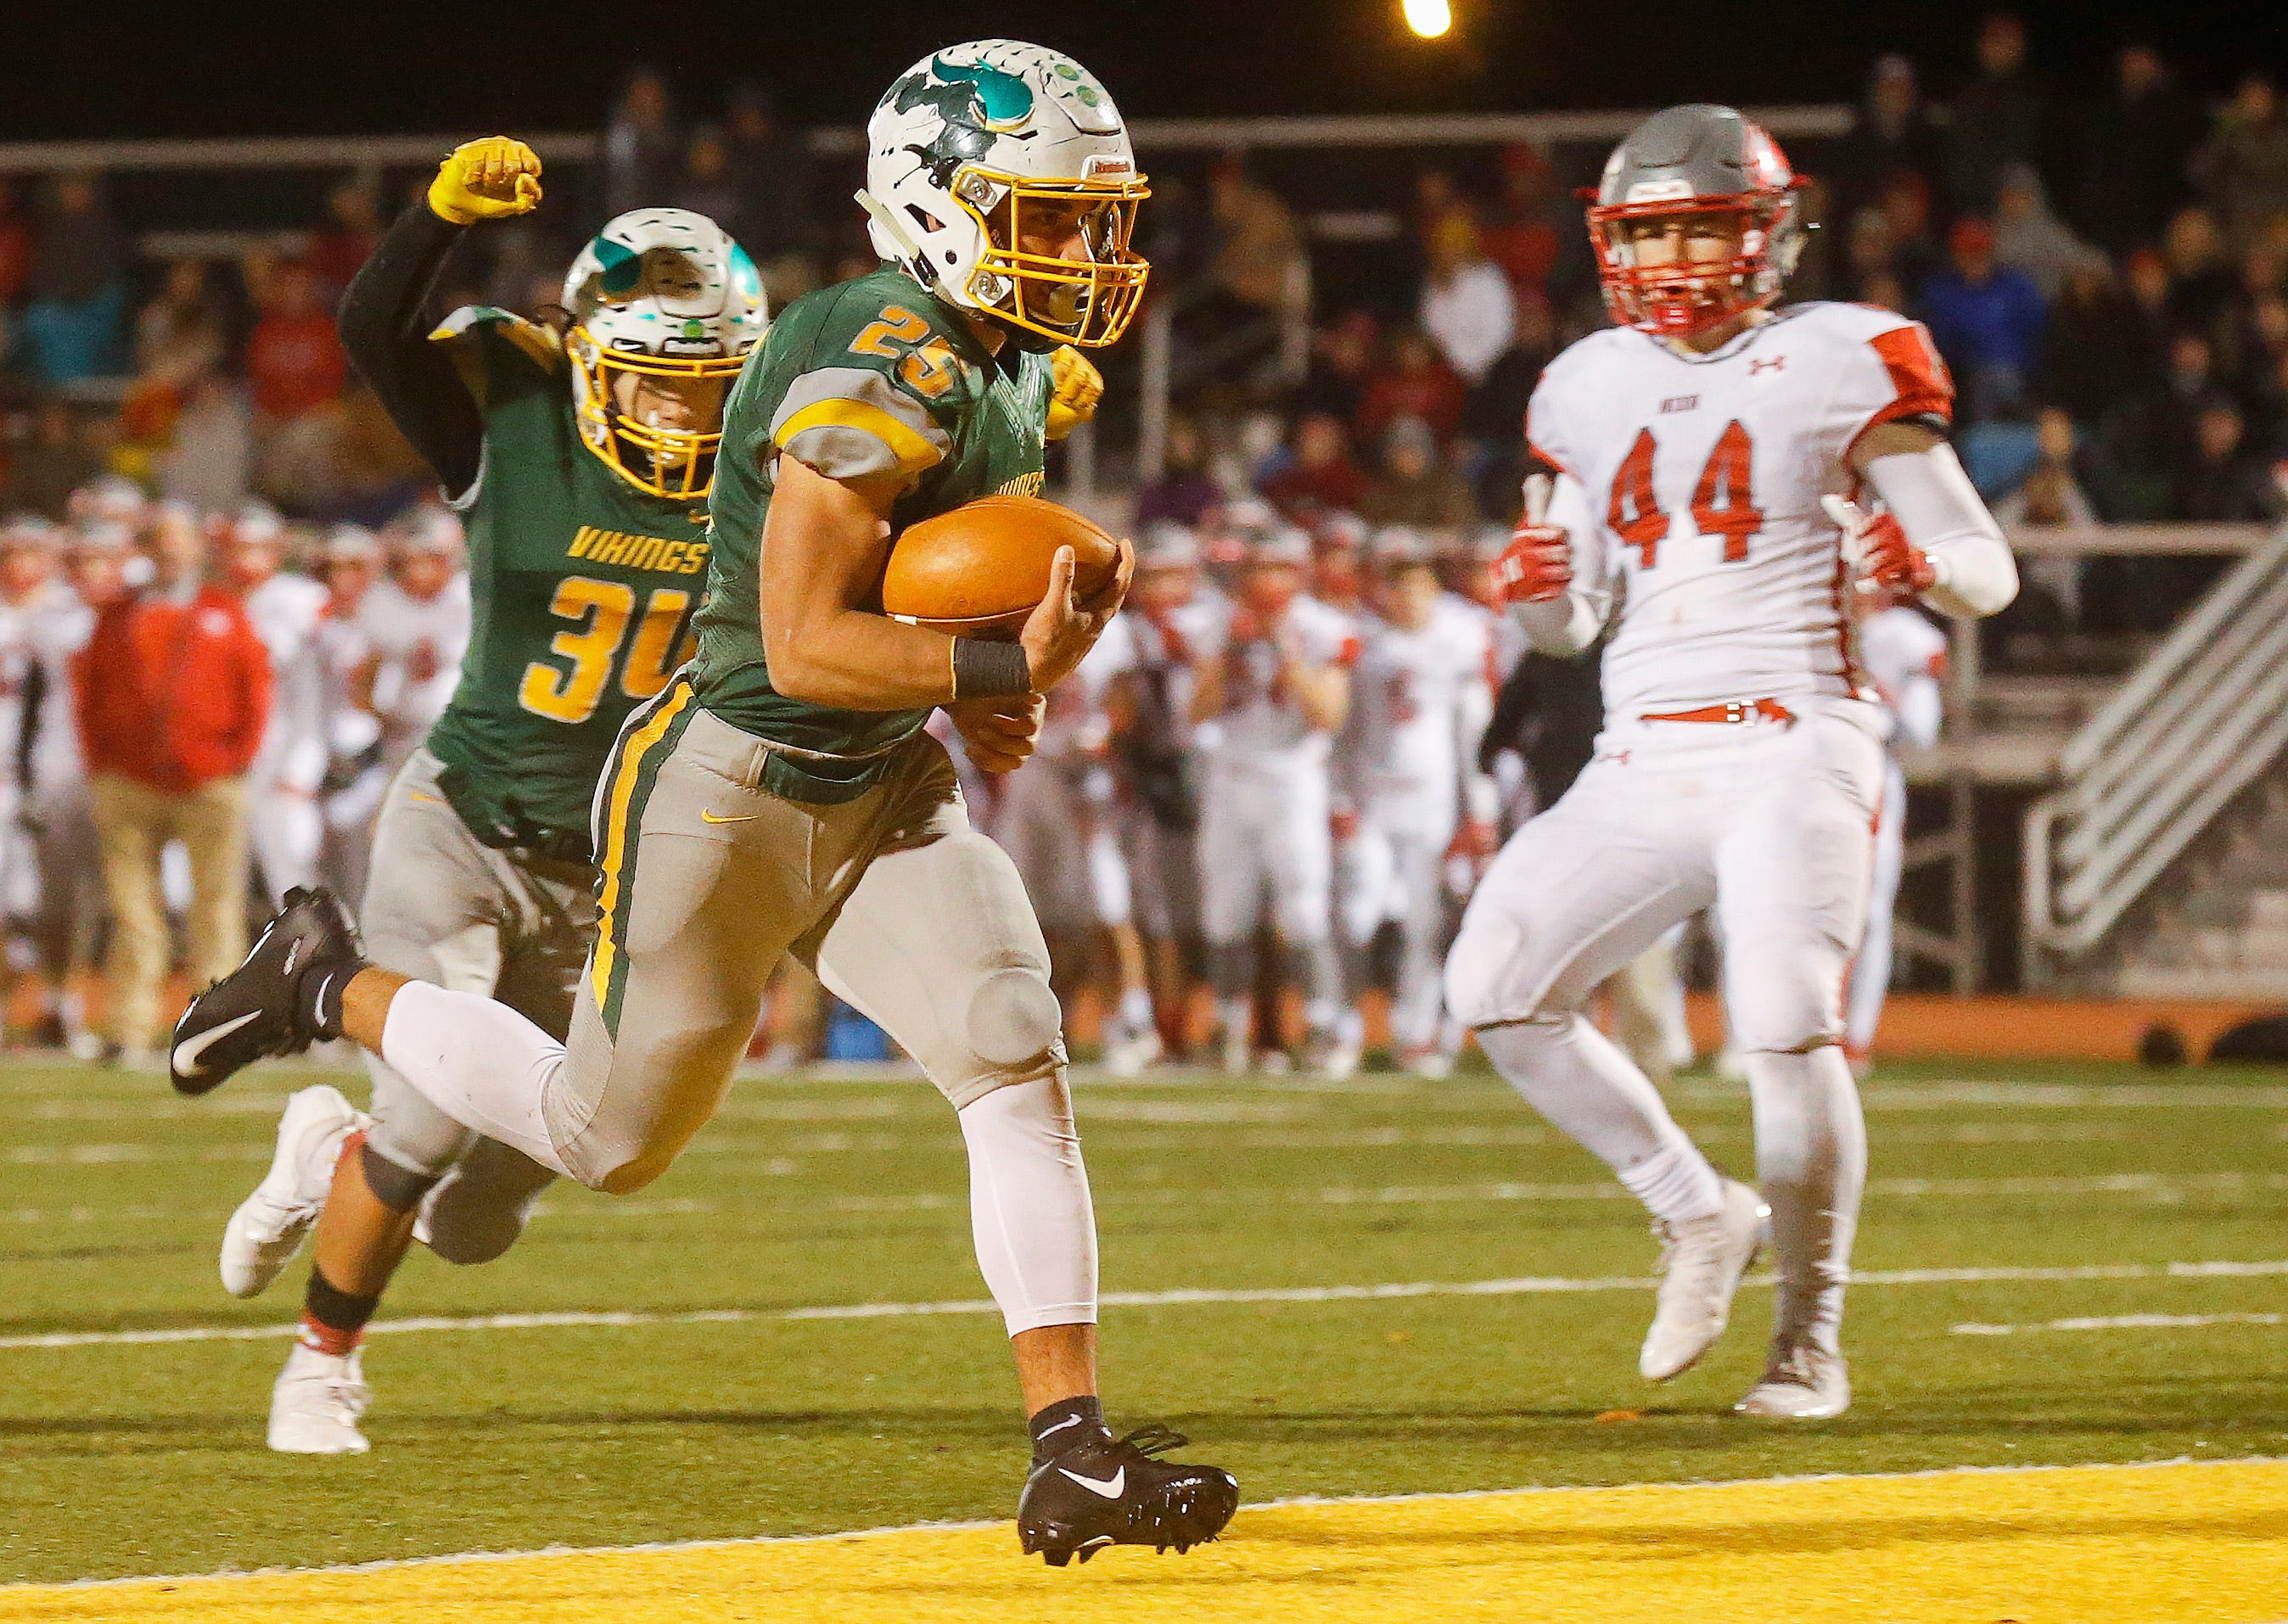 Blake Delacruz runs the ball in for a touchdown in overtime as the Parkview Vikings defeated the Nixa Eagles 42-41 at JFK Stadium on Friday, Nov. 2, 2018.